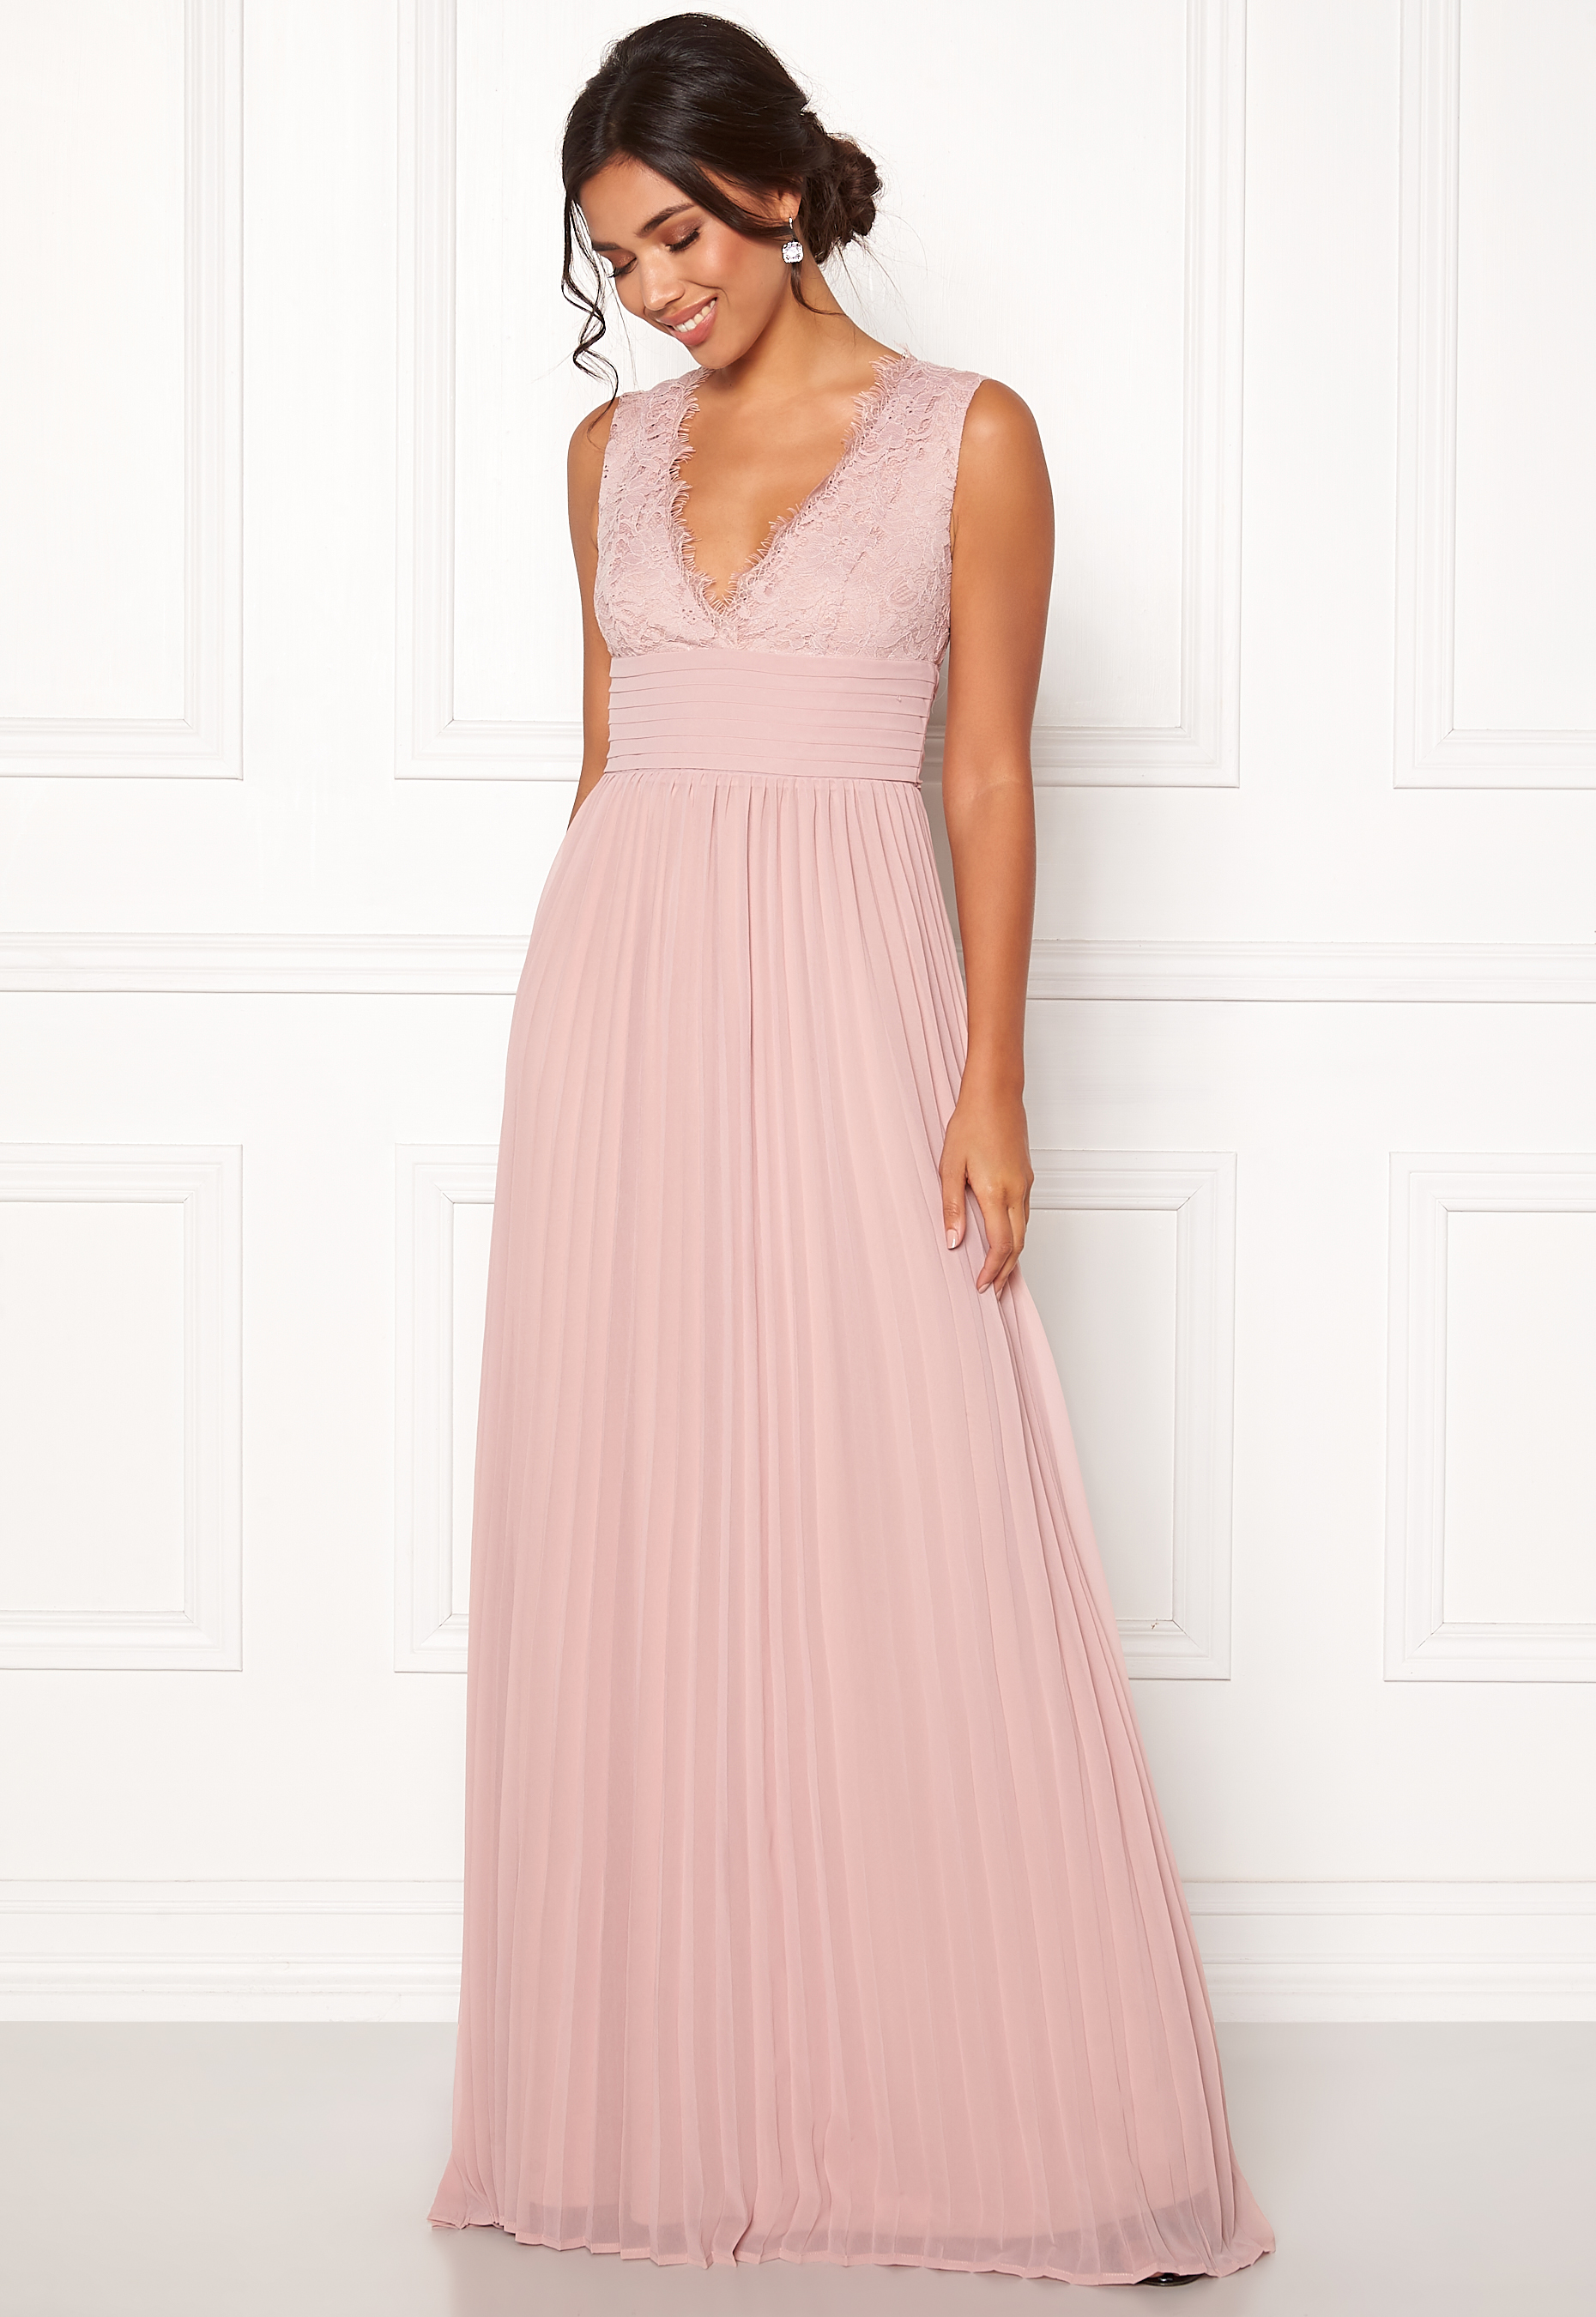 BUBBLEROOM Marianna lace top gown Dusty pink - Bubbleroom 676a11802213e